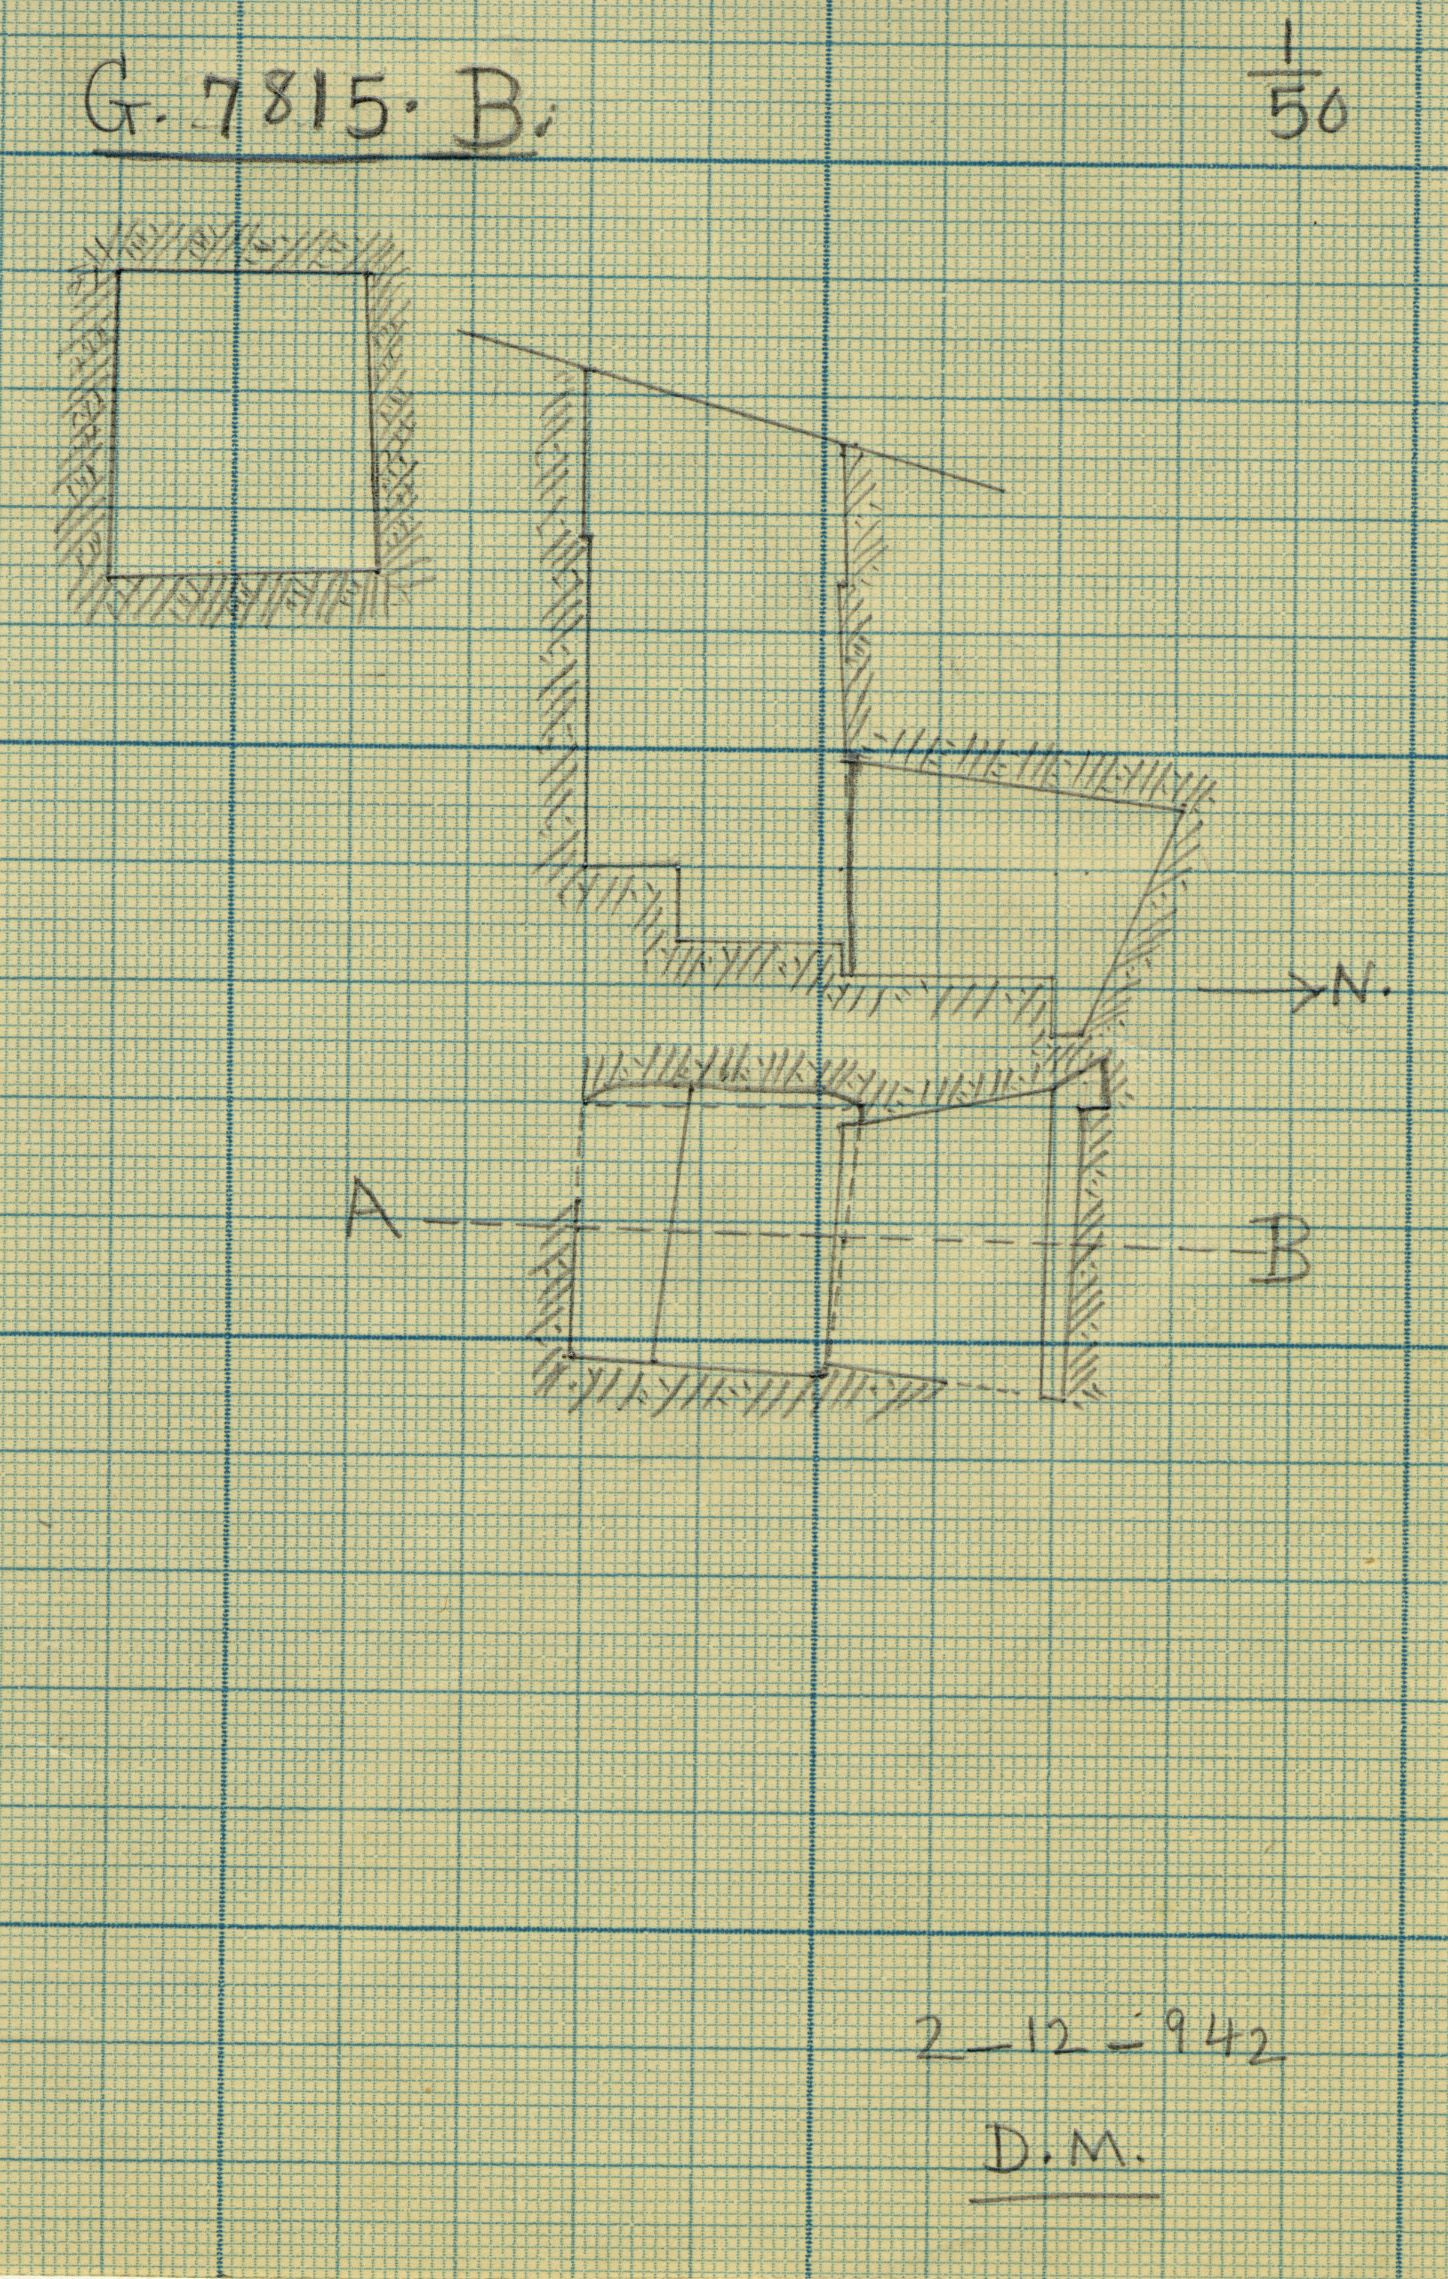 Maps and plans: G 7815, Shaft B